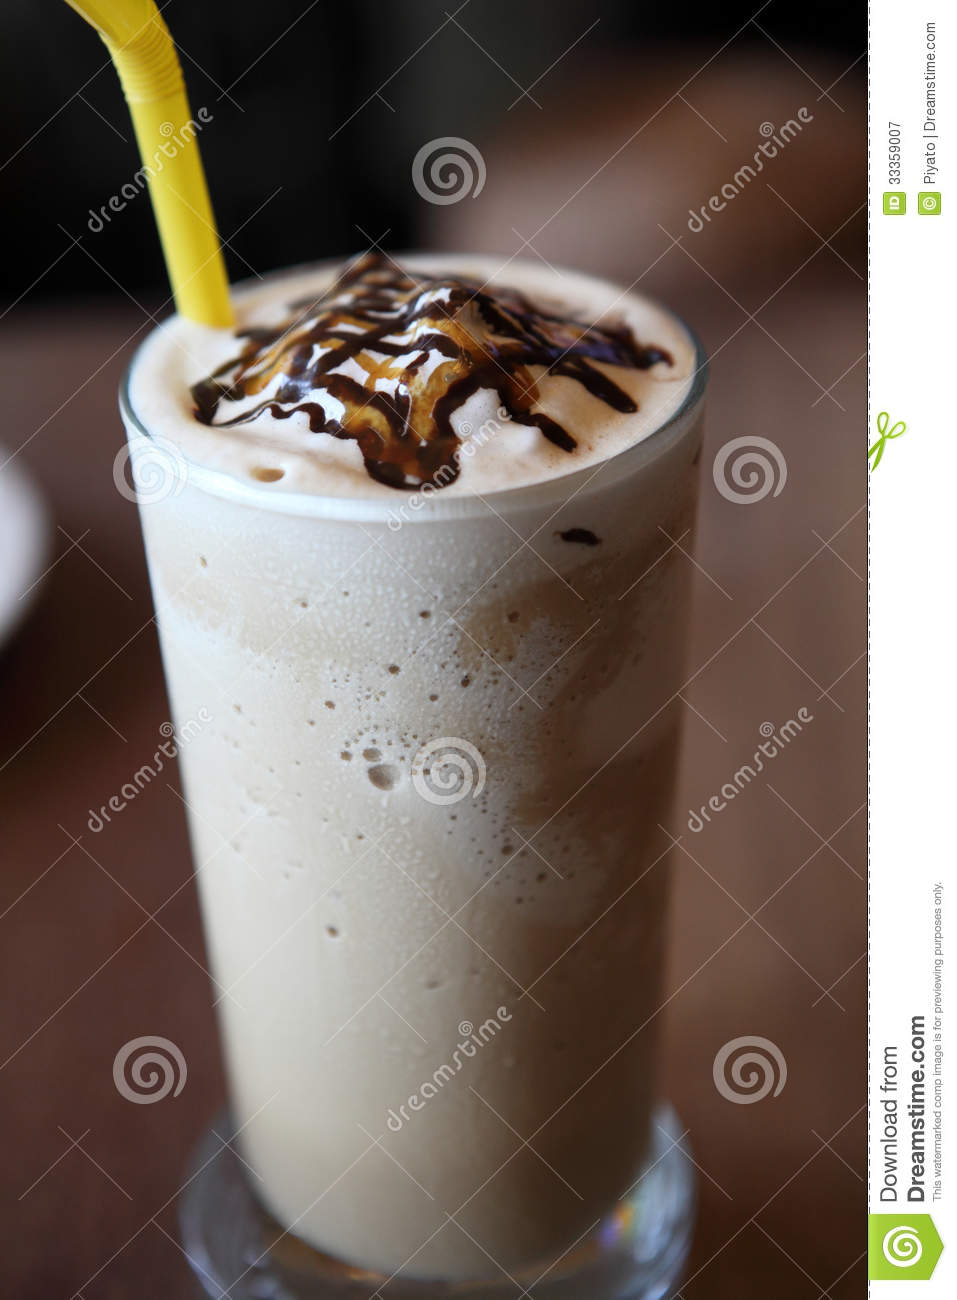 Coffee Frappe Royalty Free Stock Photography - Image: 33359007